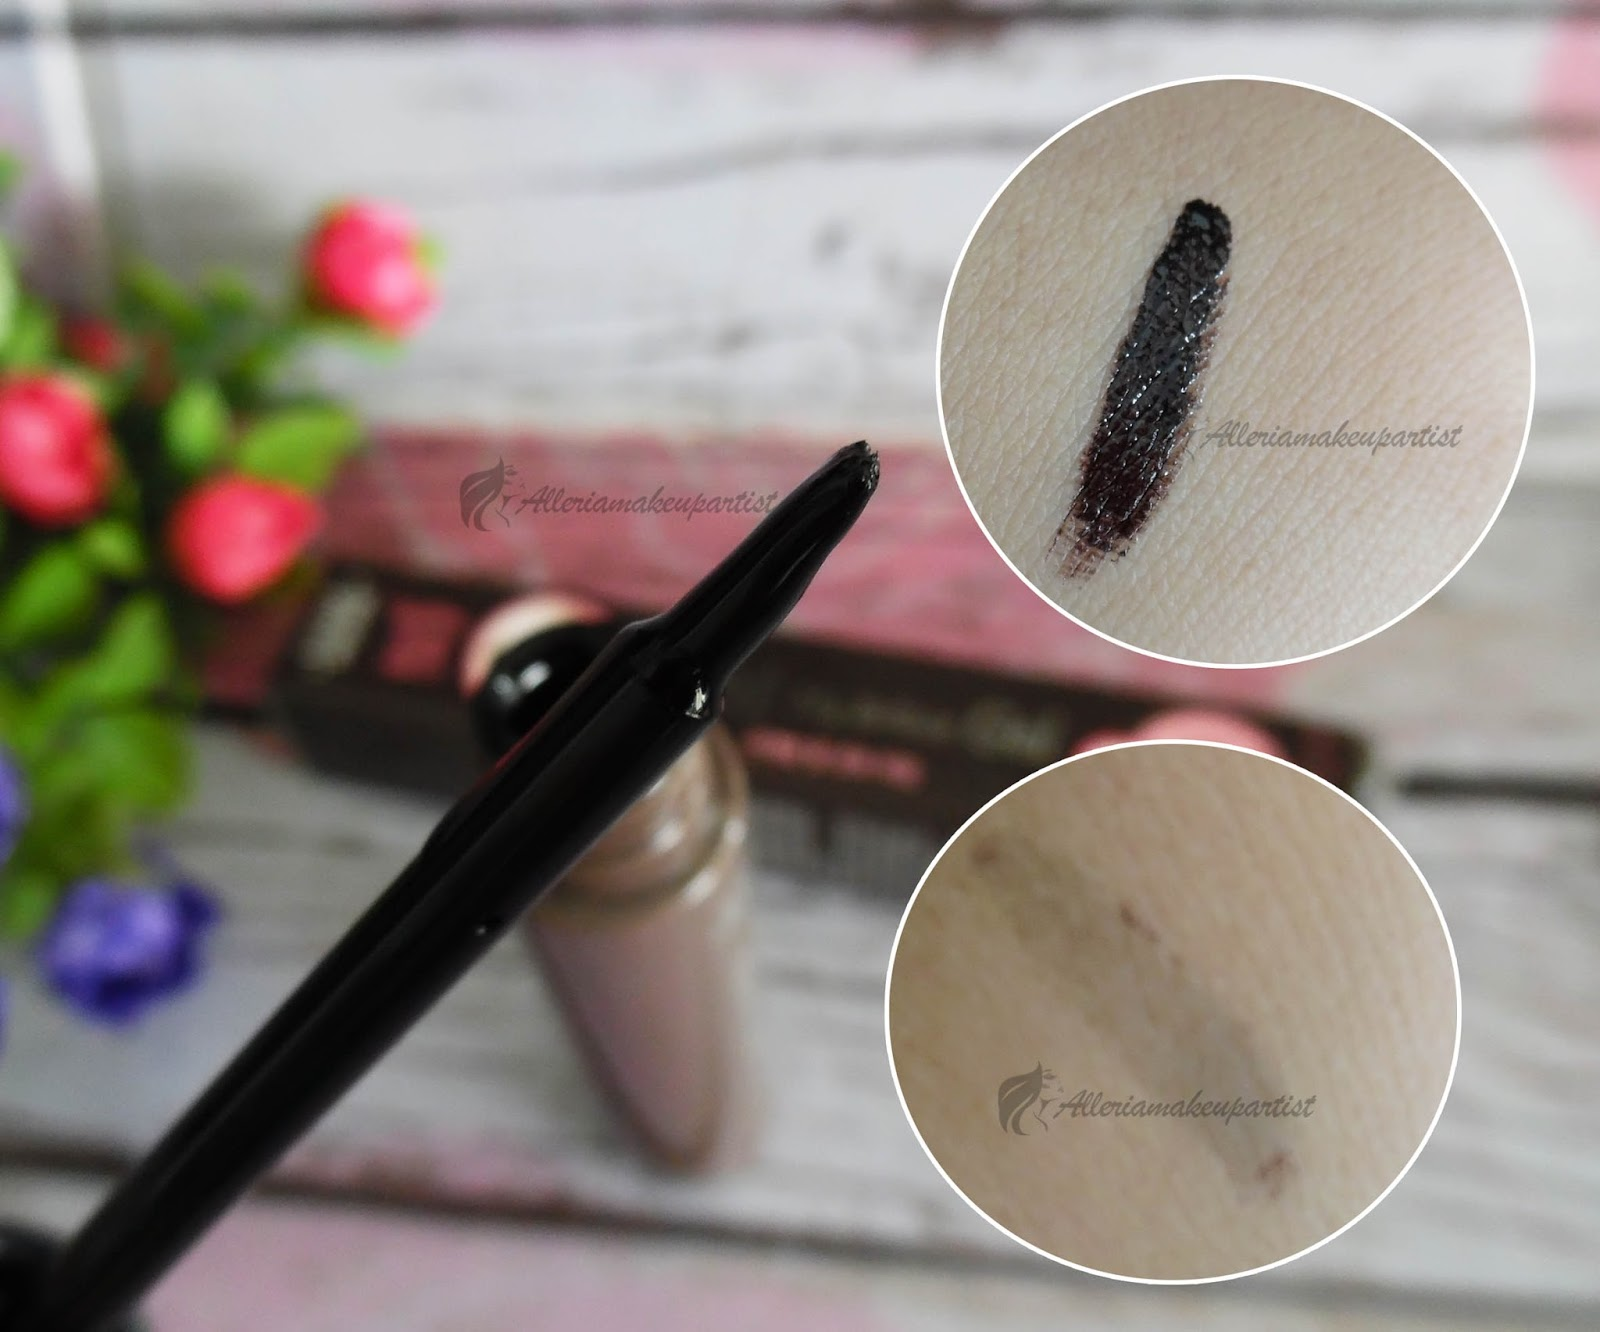 etude-house-tint-my-brows-gel-03-review.jpg